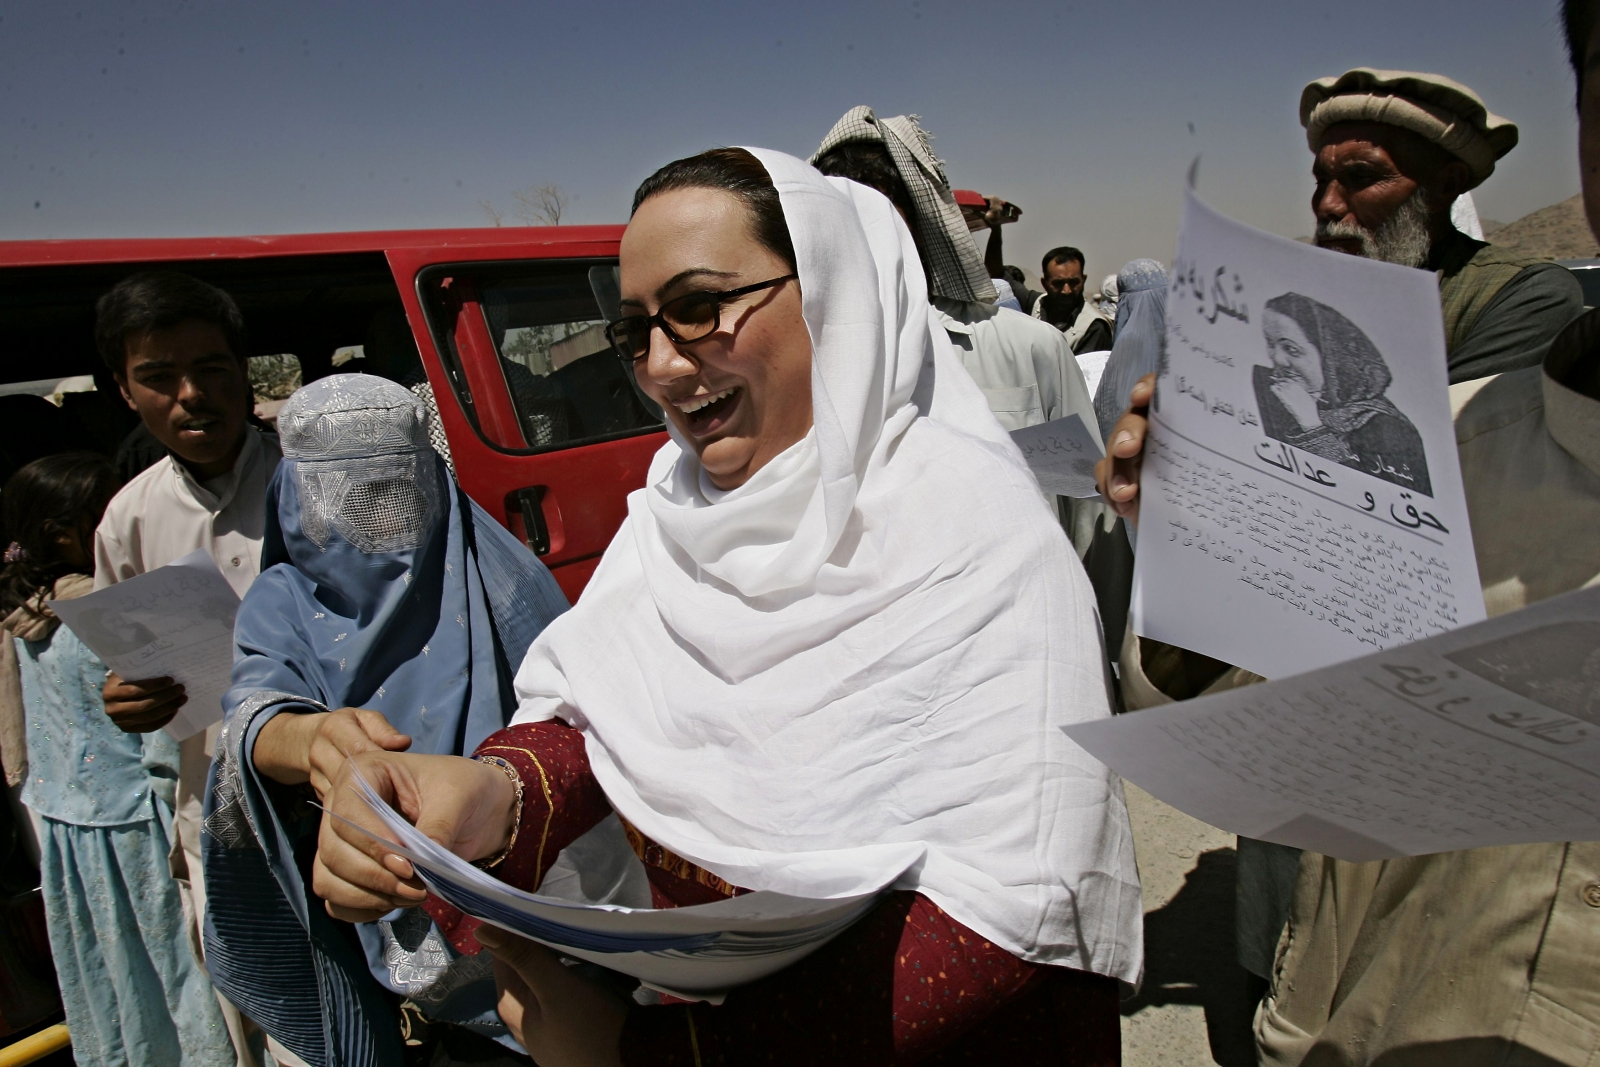 Shukria Barakzai, Afghan MP and advocate of women's rights, was injured in a suicide bomb attack